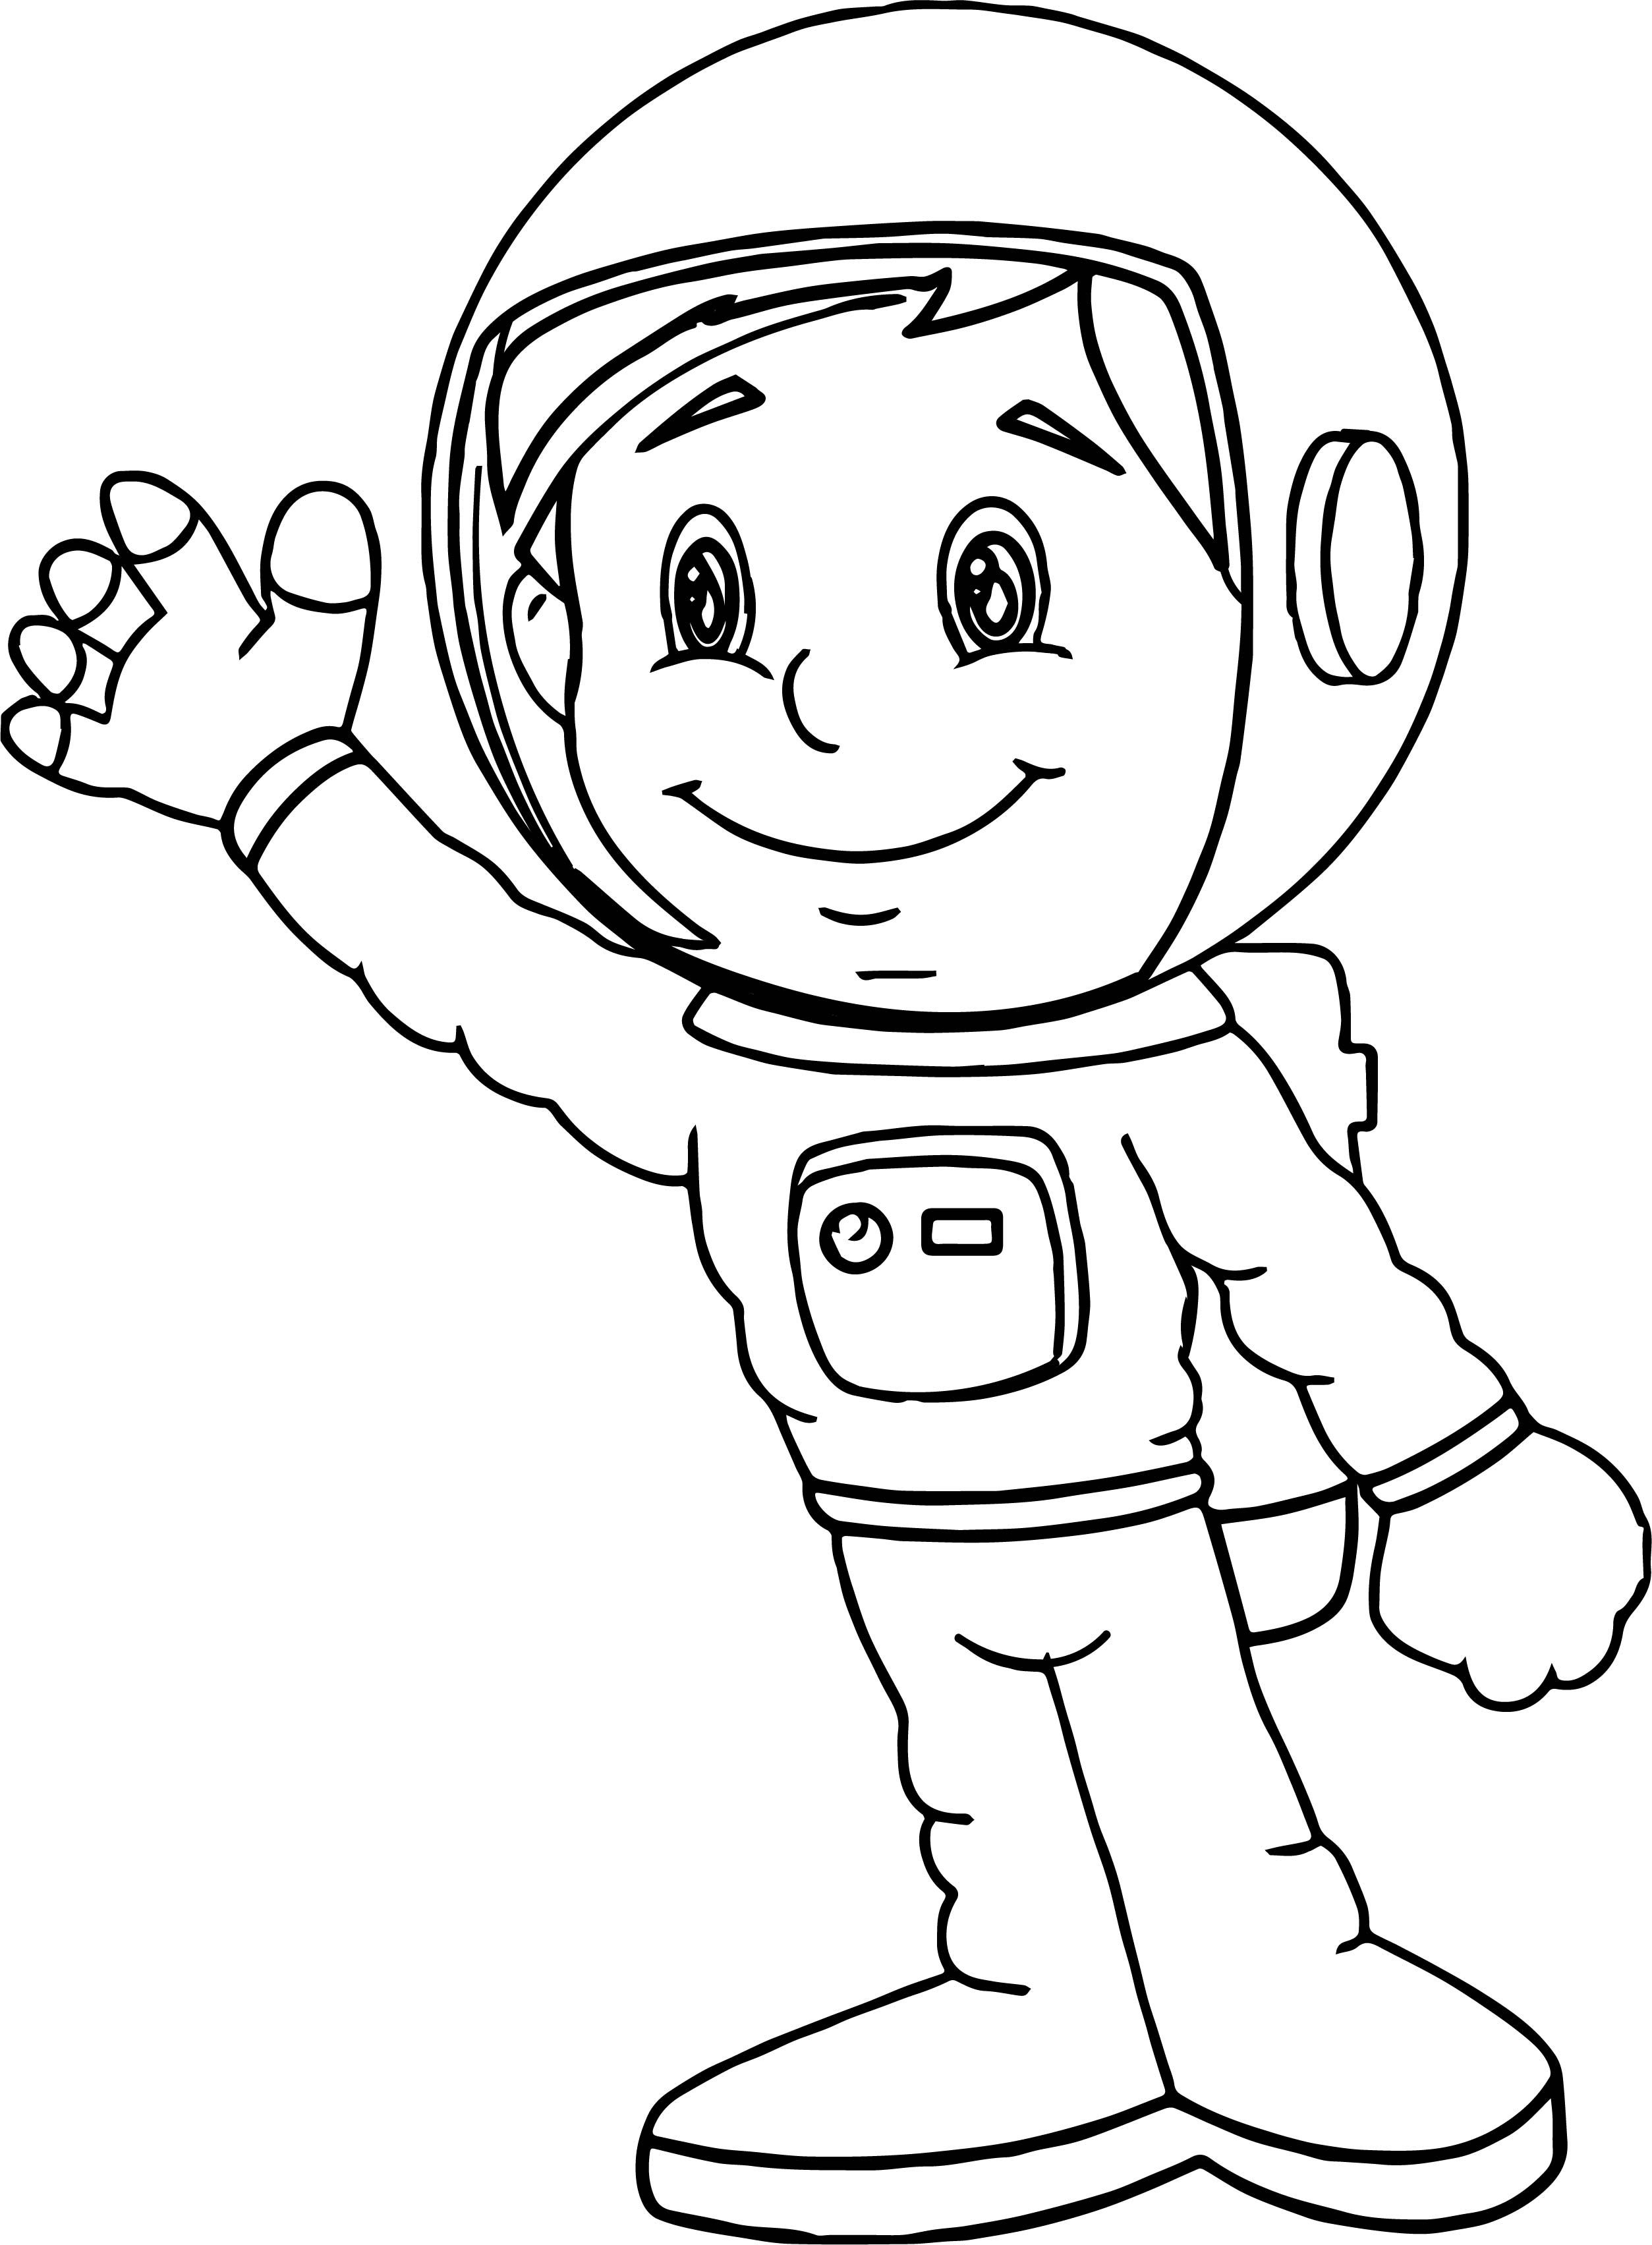 astronaut body coloring page astronaut boy coloring page wecoloringpage coloring coloring astronaut page body